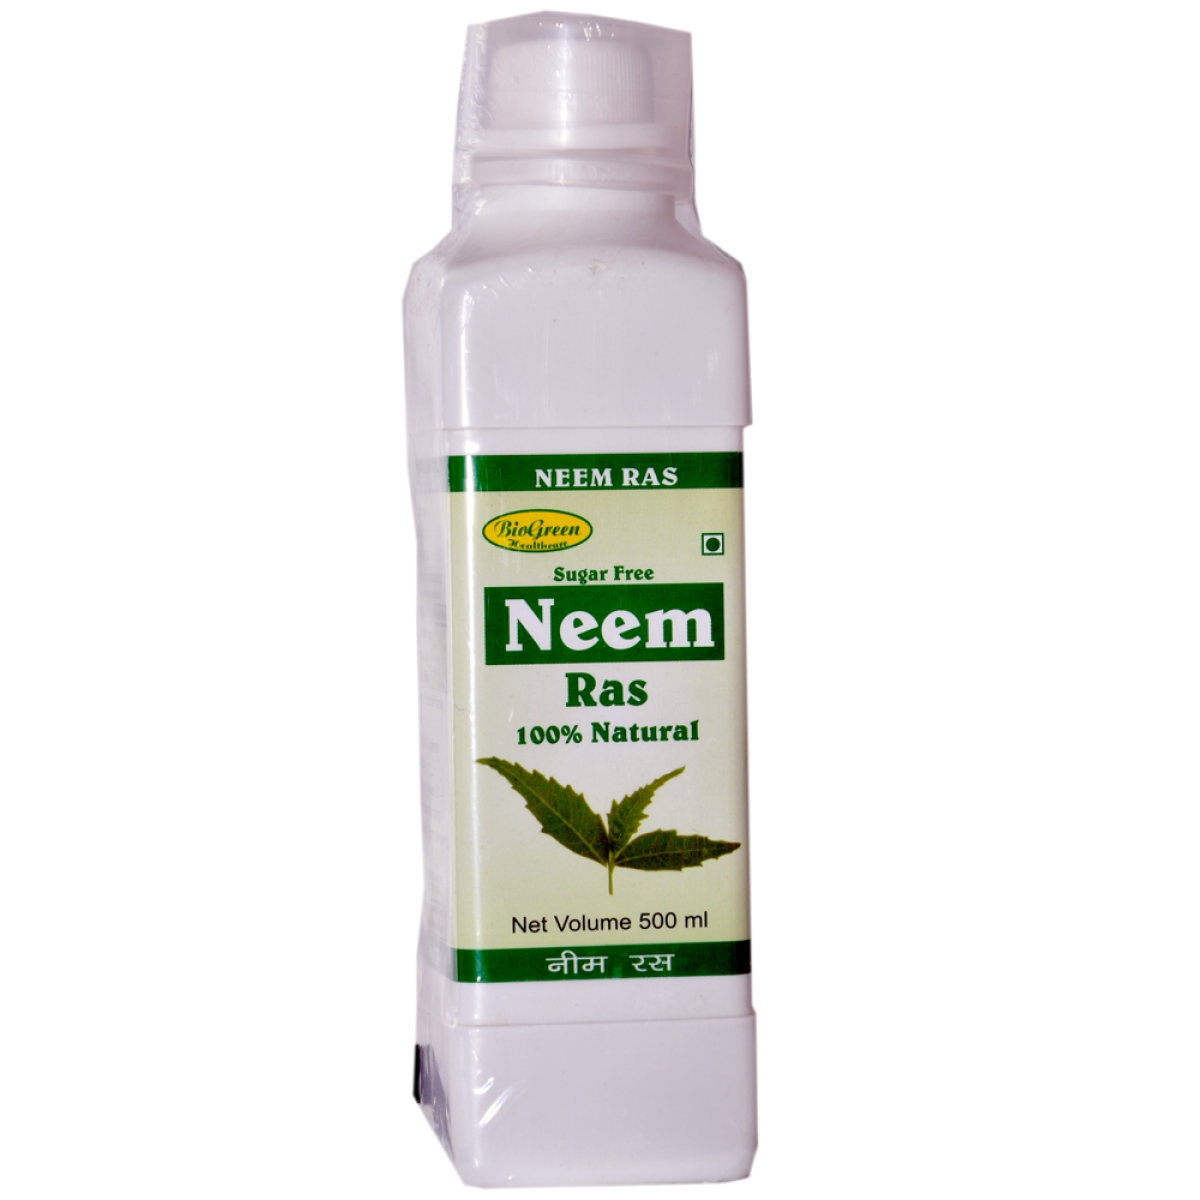 Neem Ras In Andaman And Nicobar Islands